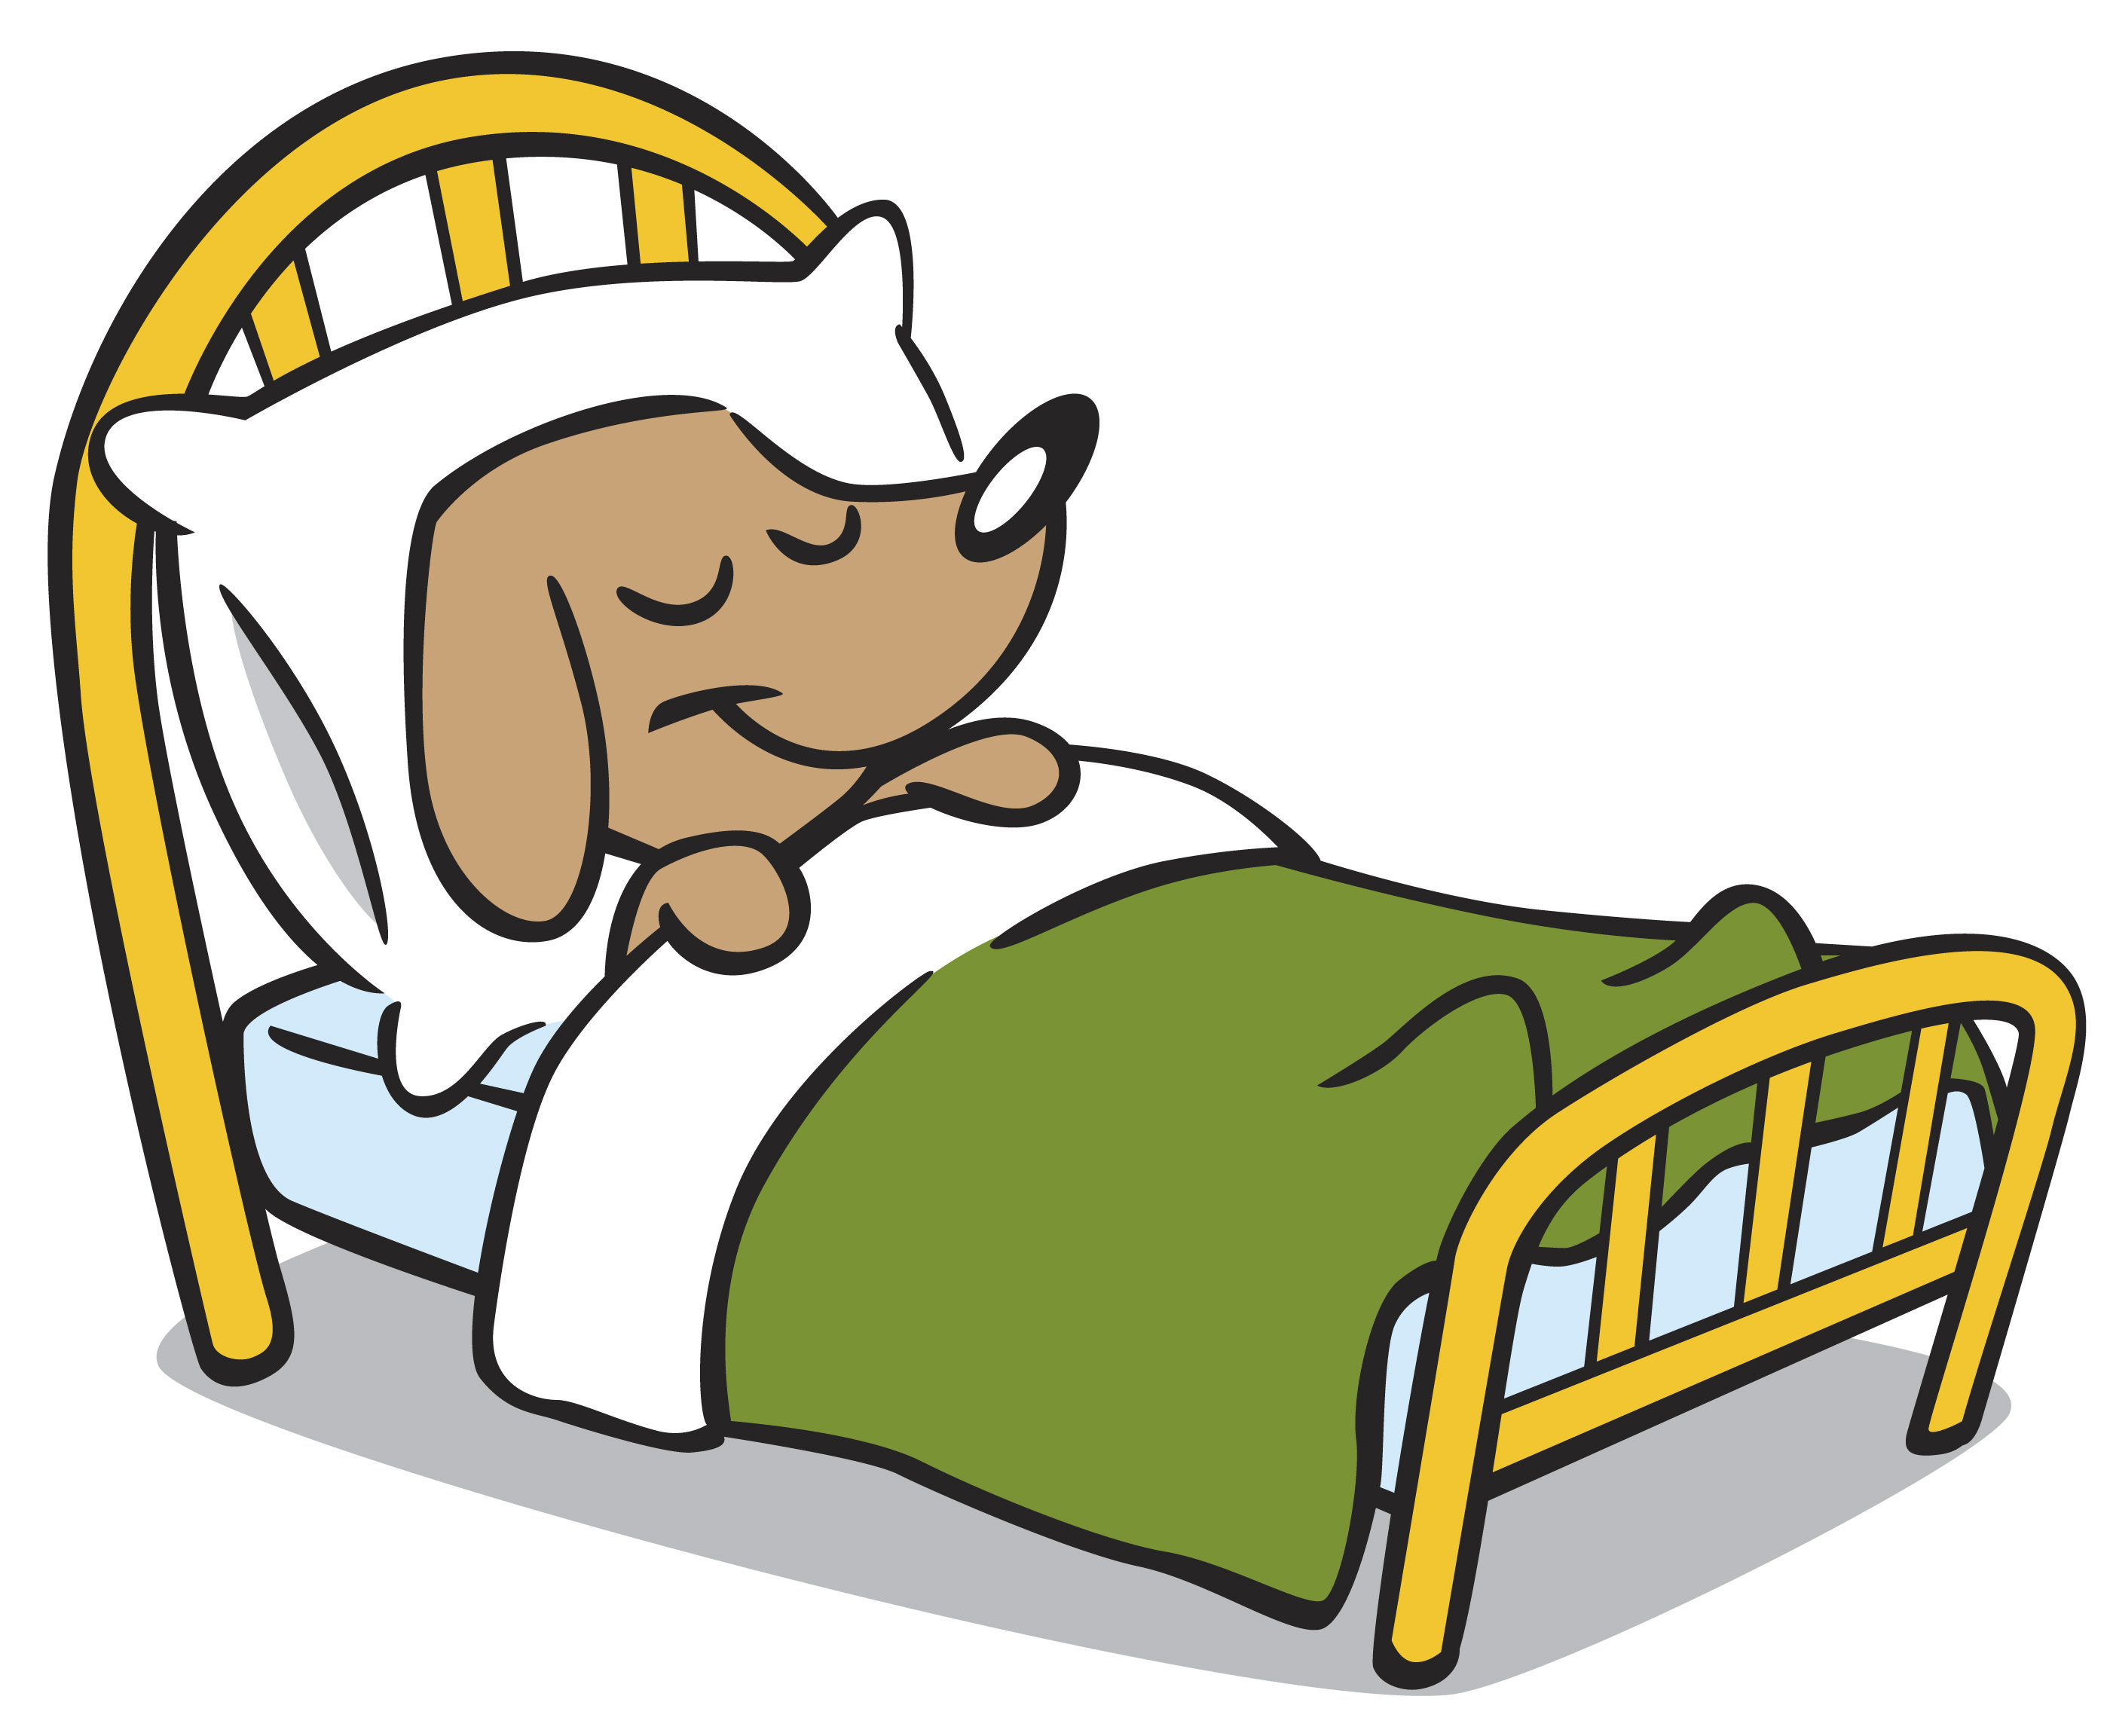 Clip Art Dog Bed Clipart - Clipart Kid